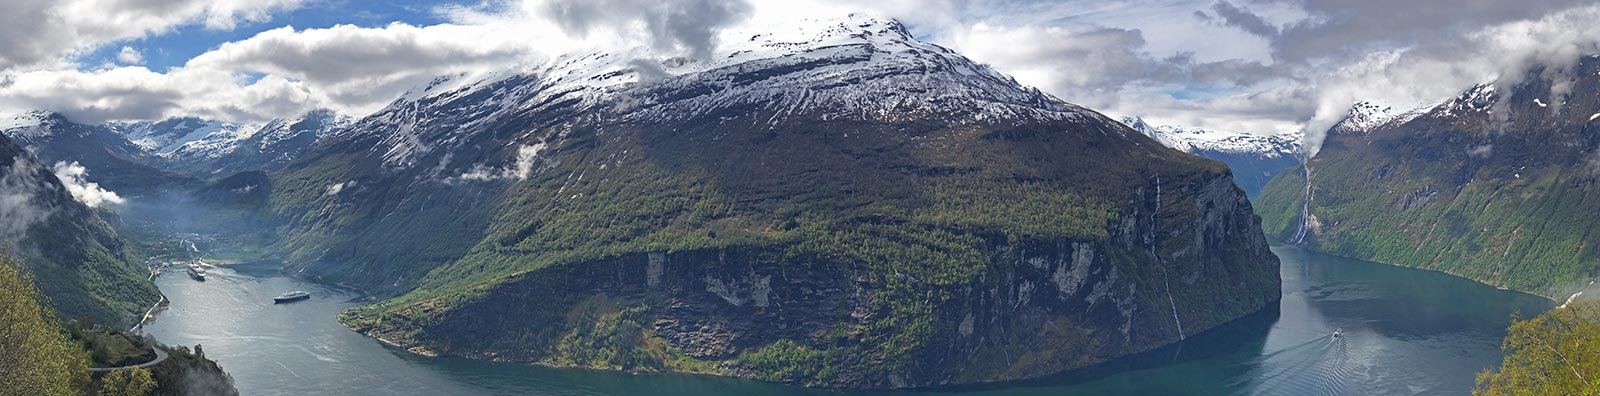 views of geirangerfjord, Norway from above